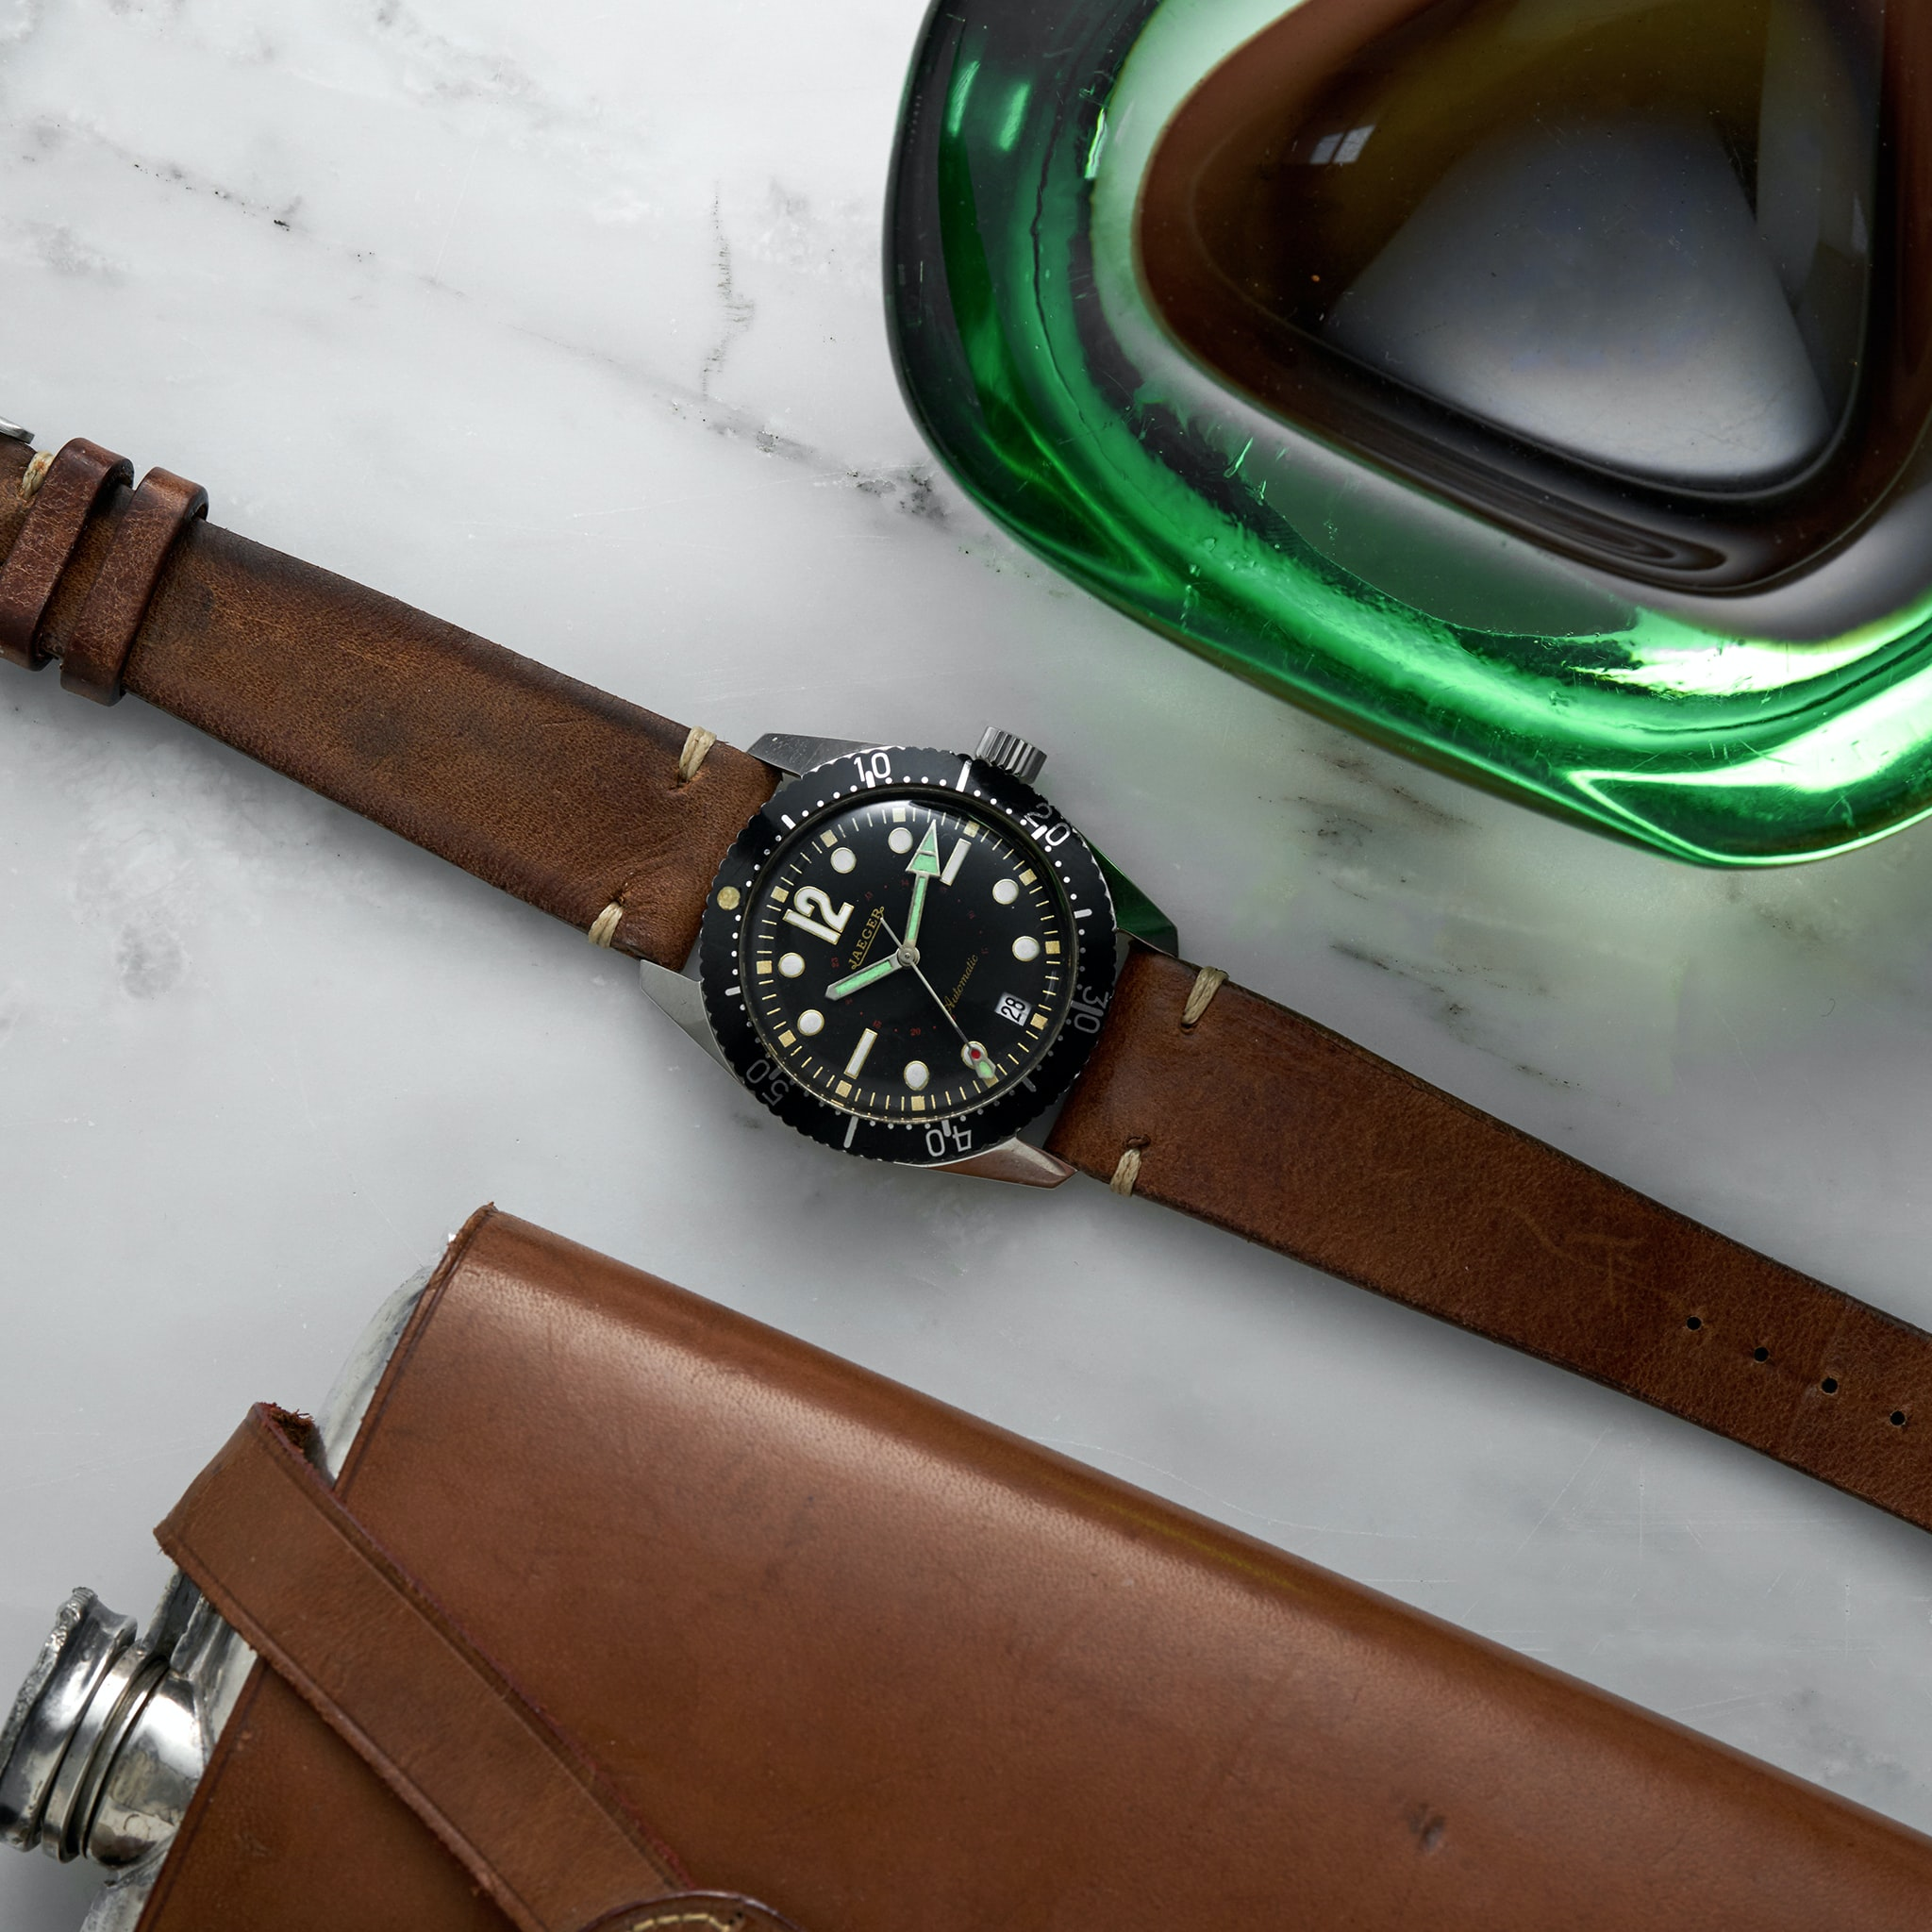 In The Shop: A 1989 Tudor Submariner Reference 79090, 1938 Omega 'Flying Saucer' Reference CK2013, And A 1960s Jaeger Diver '20 ATM' 900 JaegerAutomaticDiver Lifestyle